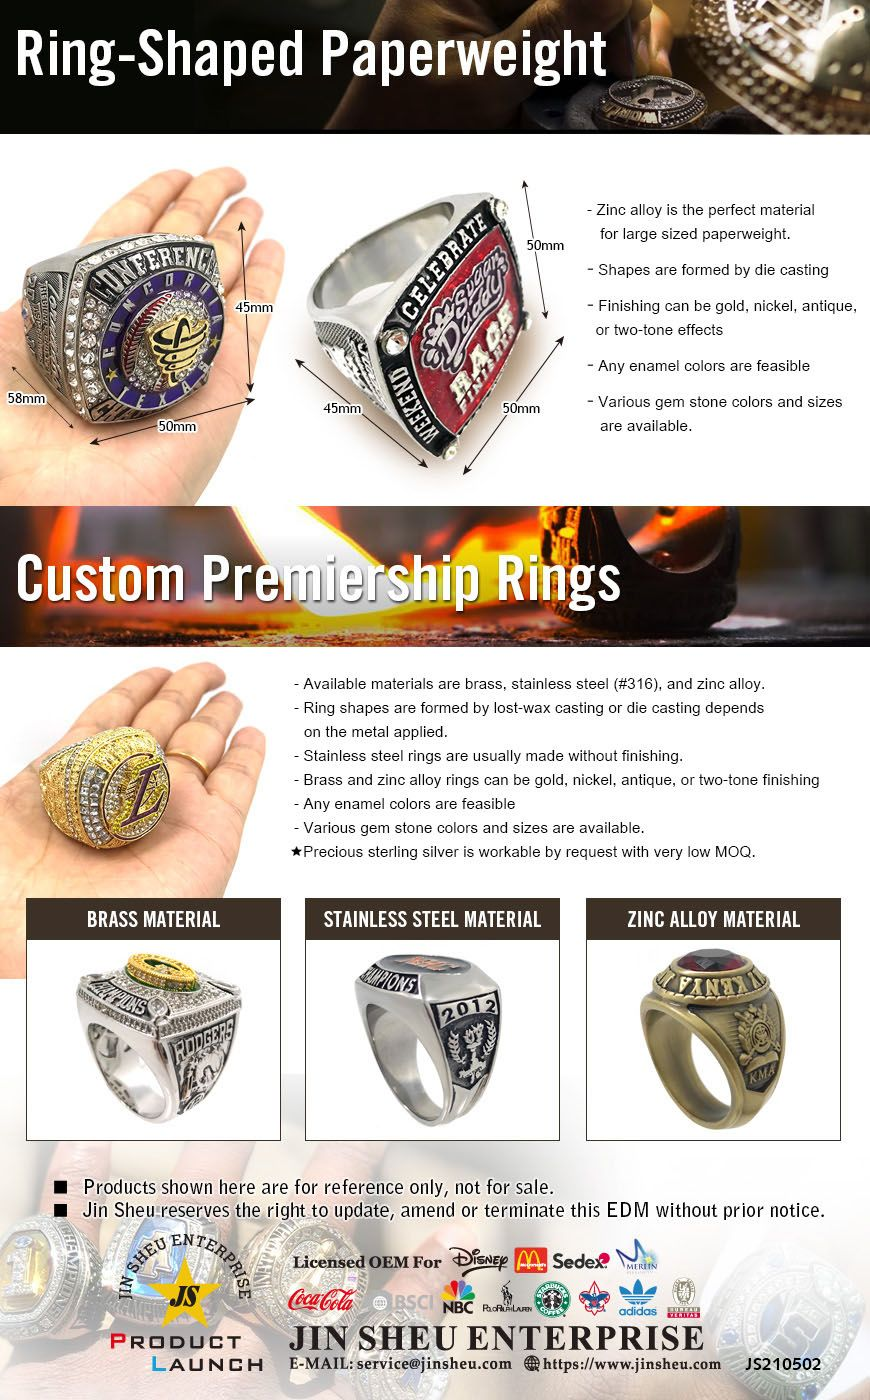 Customized Sports Ring Paperweights for Your Favorite Team. They can be personalized in brass, stainless steel, zinc alloy or even in sterling silver. Jin Sheu's team of experts is here to help you with the perfect design.